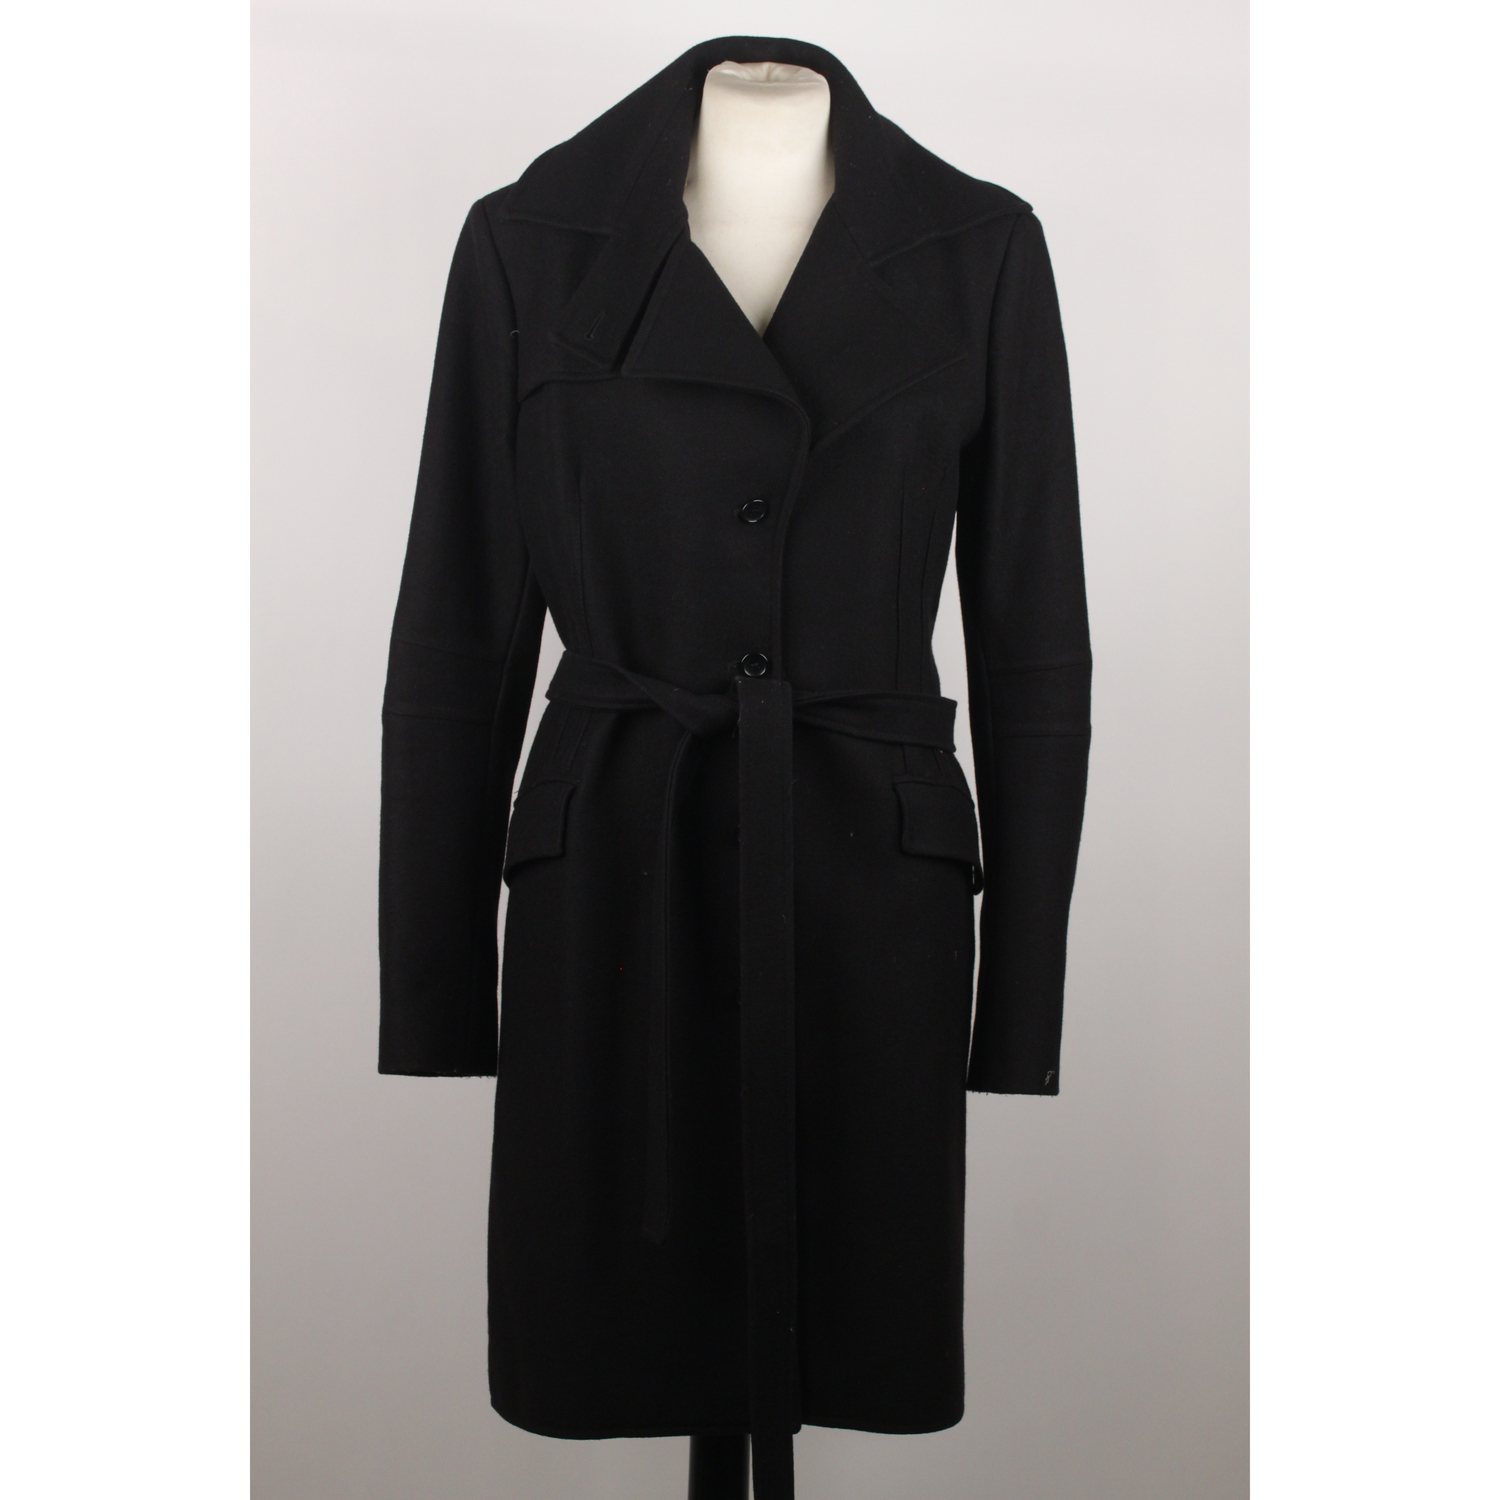 ae03ae27c1f Composition: 80% Wool, 20% Nylon - Belted waistline - Side pockets - Black  lining - Size: 44 IT (The size shown for this item is the size ...